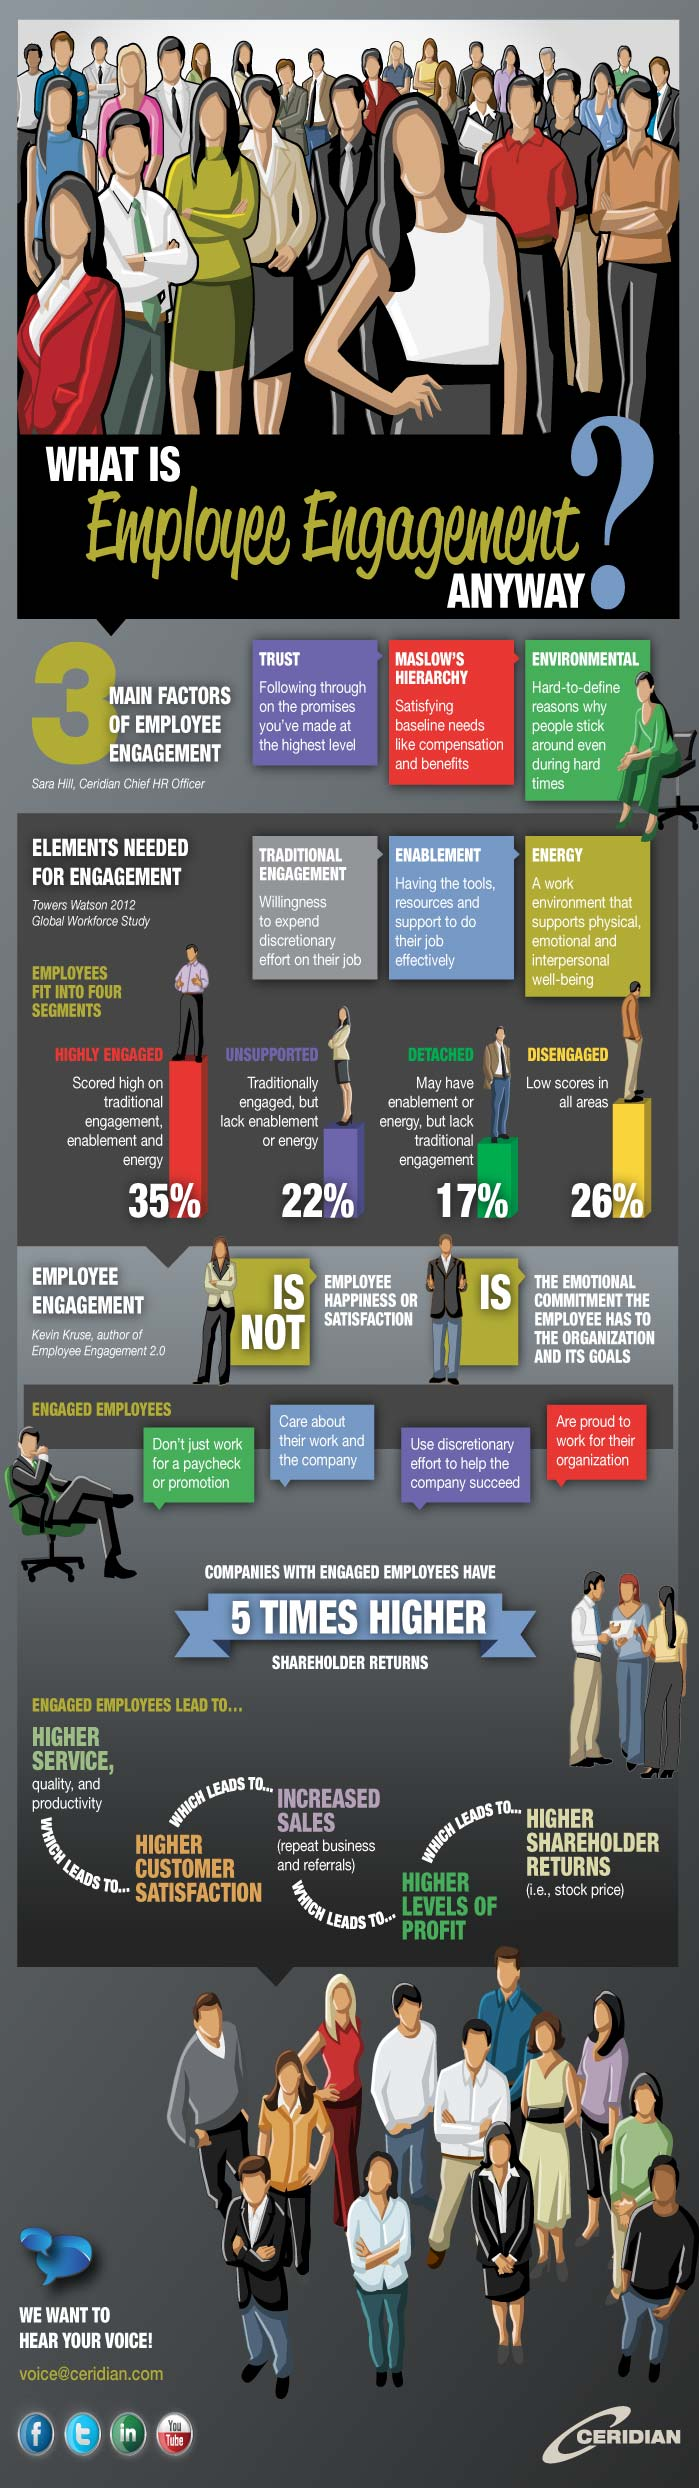 Importance of Employee Engagement in Corporate Field